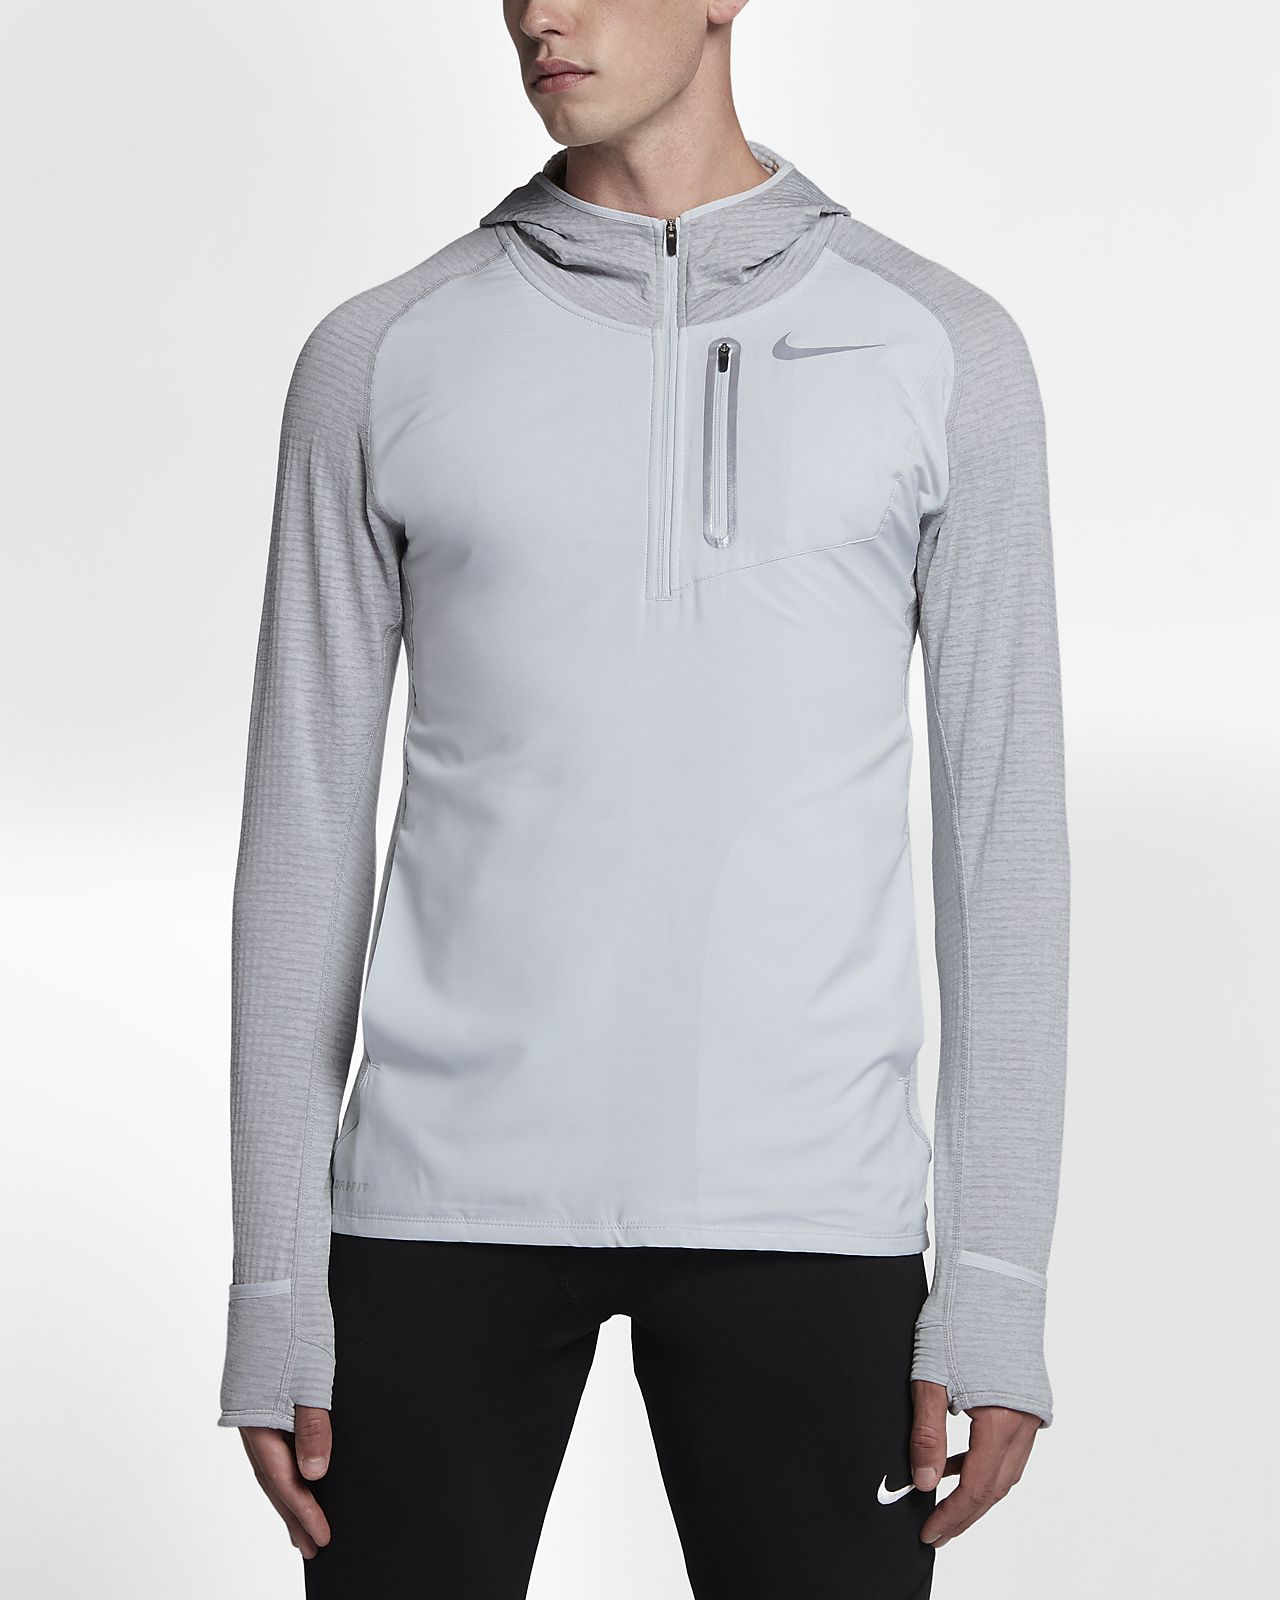 nike therma sphere element hybrid men 39 s half zip running. Black Bedroom Furniture Sets. Home Design Ideas